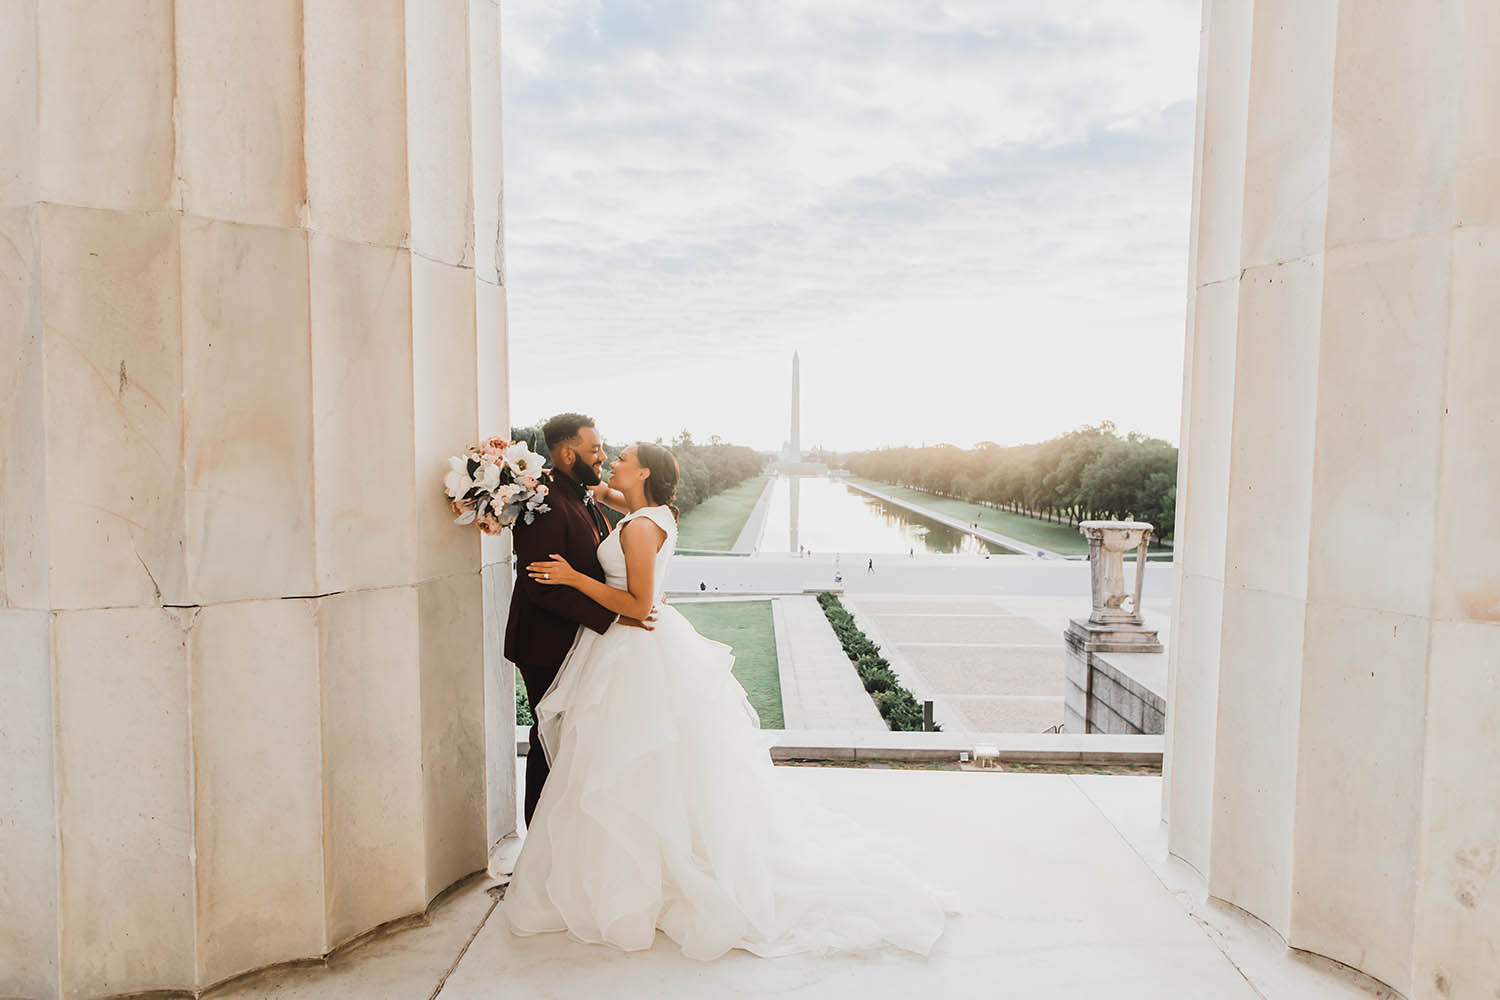 A bride and groom embrace while leaning against a massive column in the Lincoln Memorial. In the background the Washington Monument soars over the reflection pool.